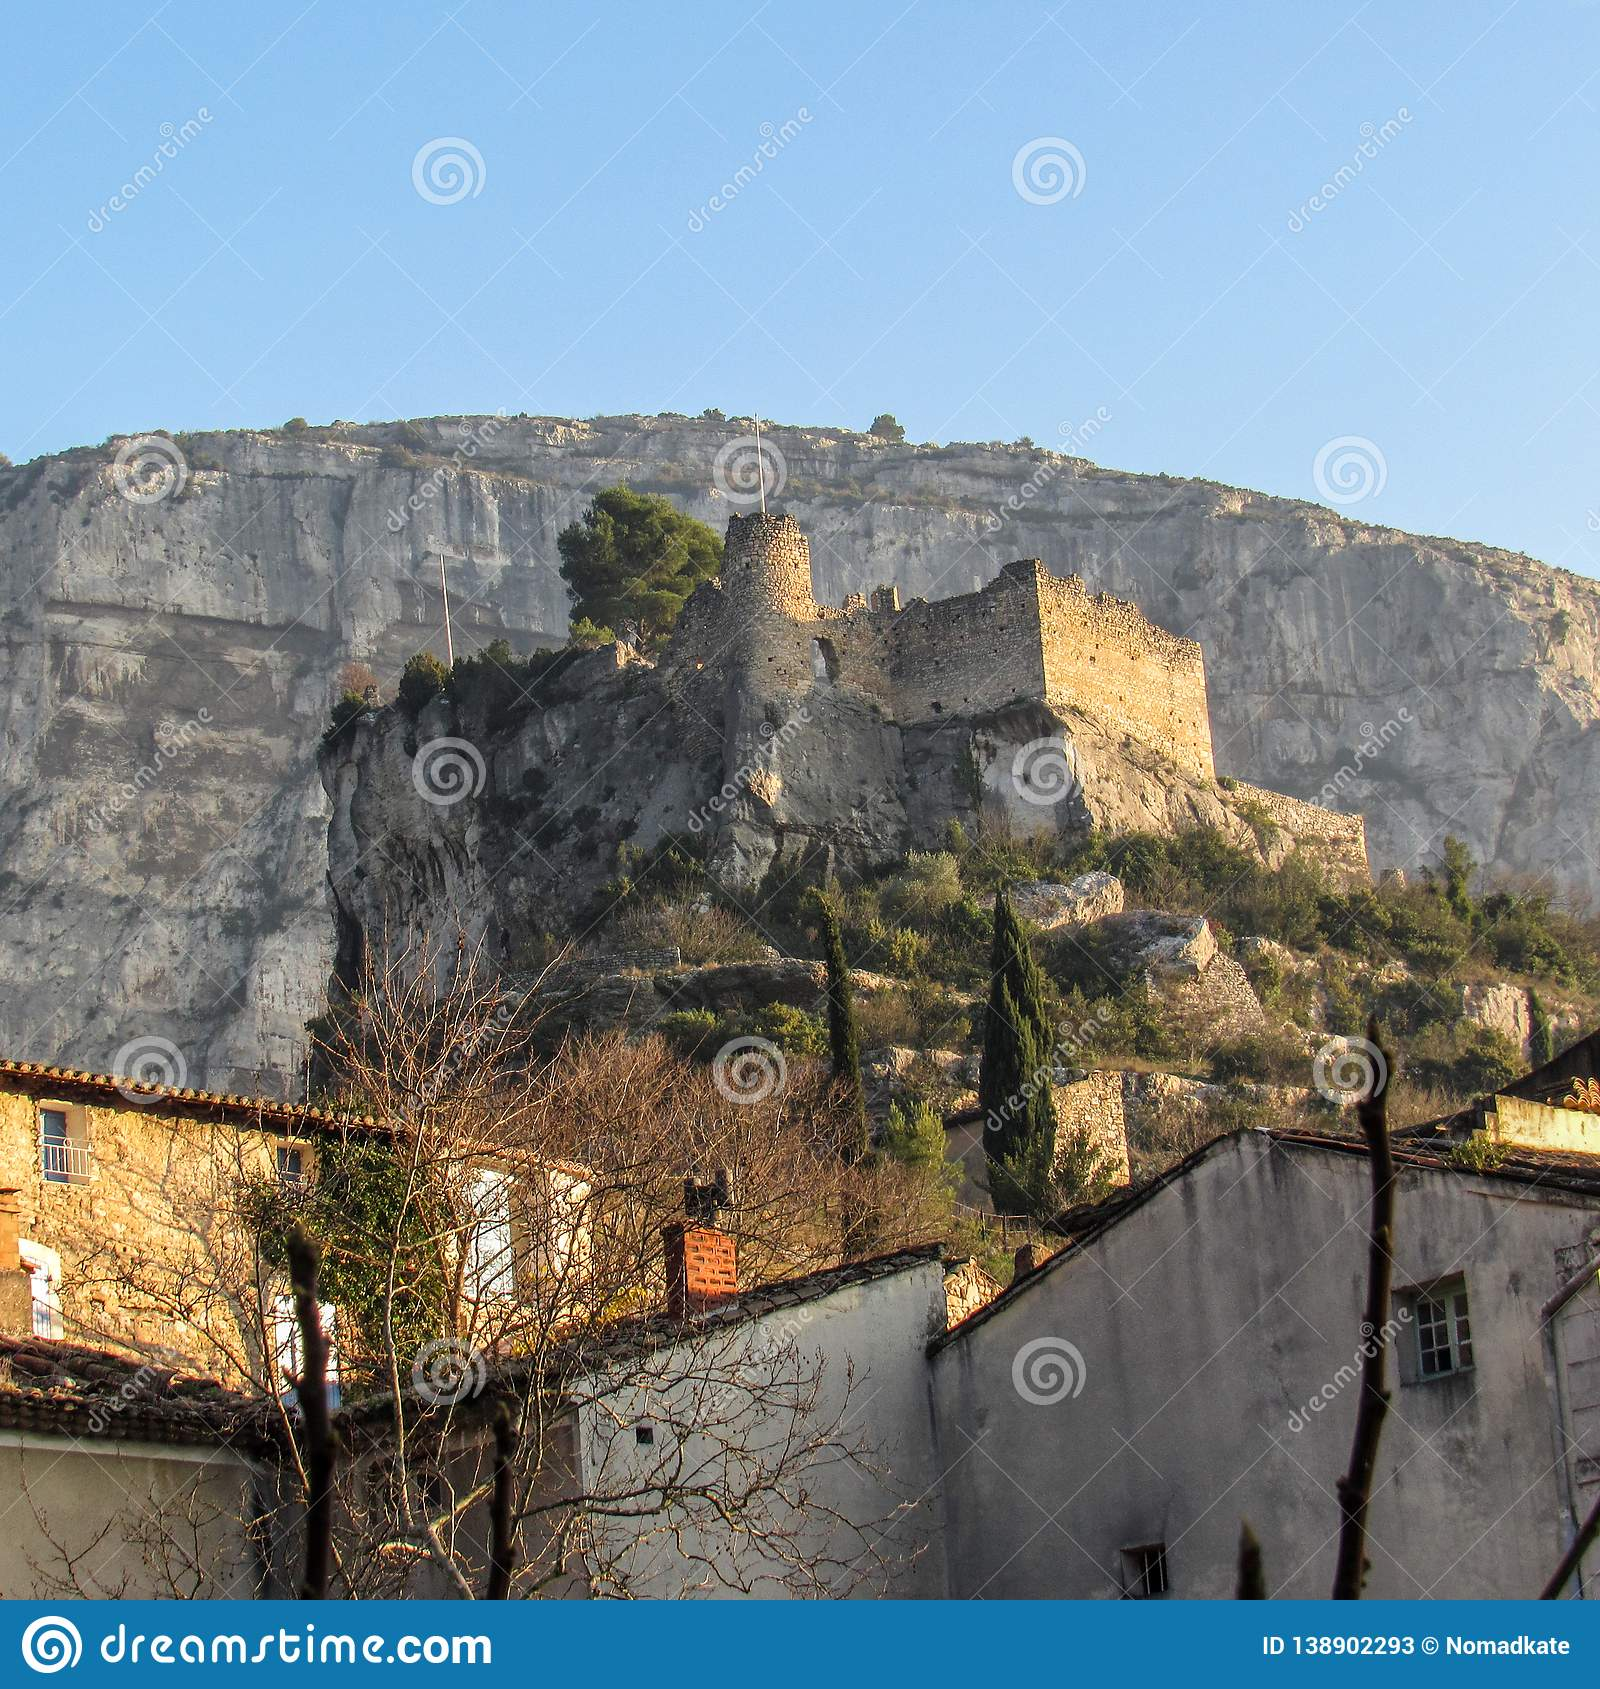 Streets of the Fontaine de Vaucluse with a castle ruins, Provence France